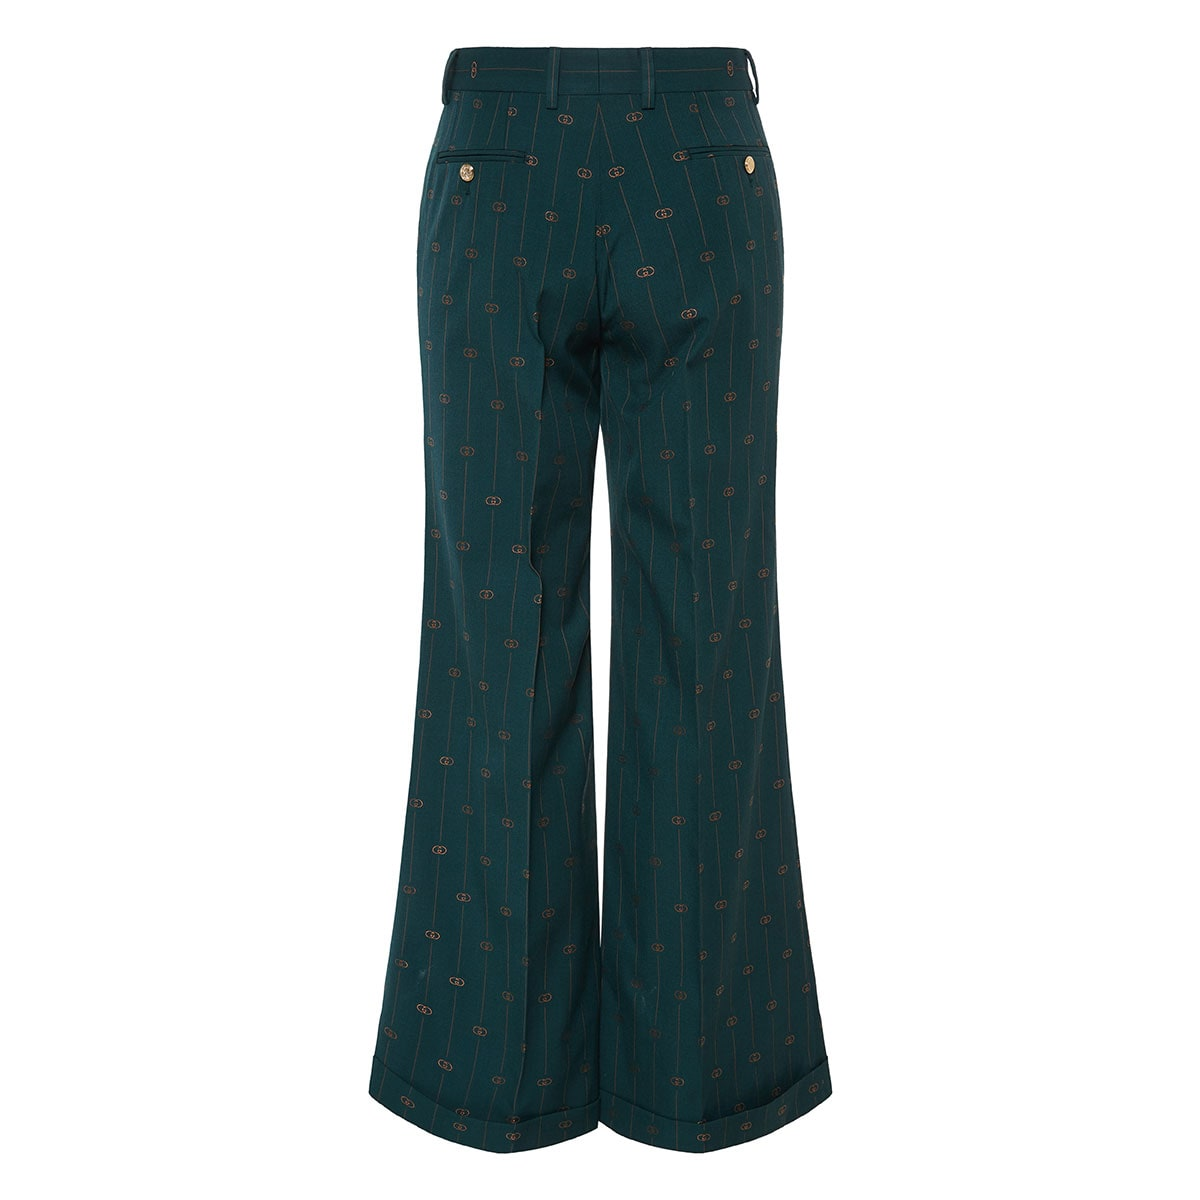 GG flared tailored trousers